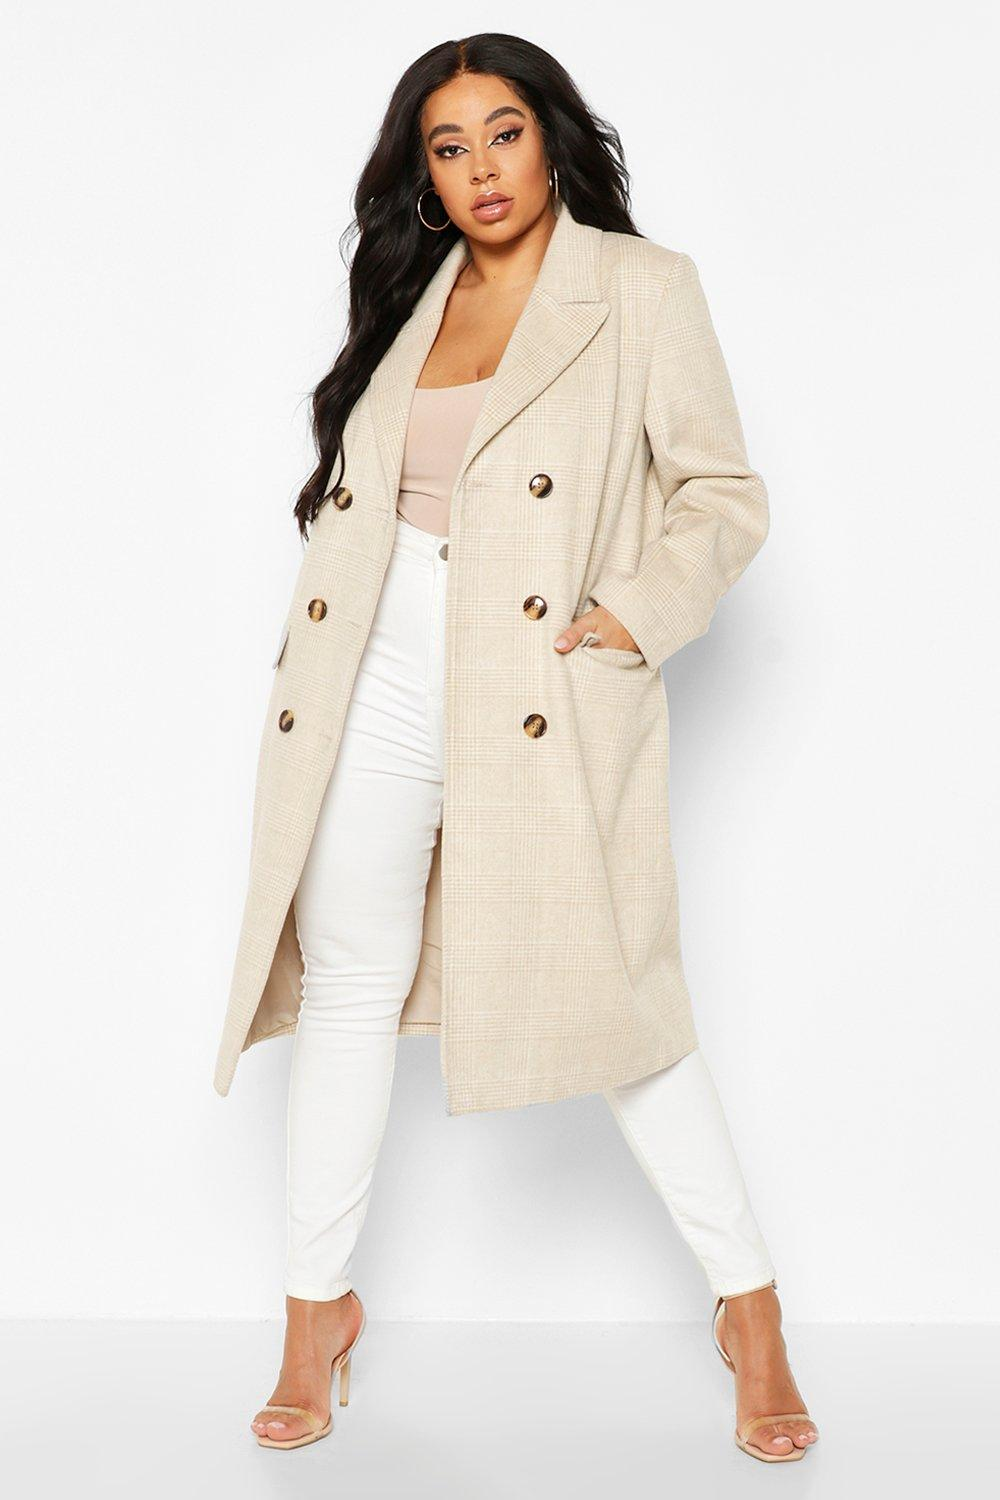 boohoo Womens Plus Tonal Check Double Breasted Boyfriend Coat - Beige - 18, Beige